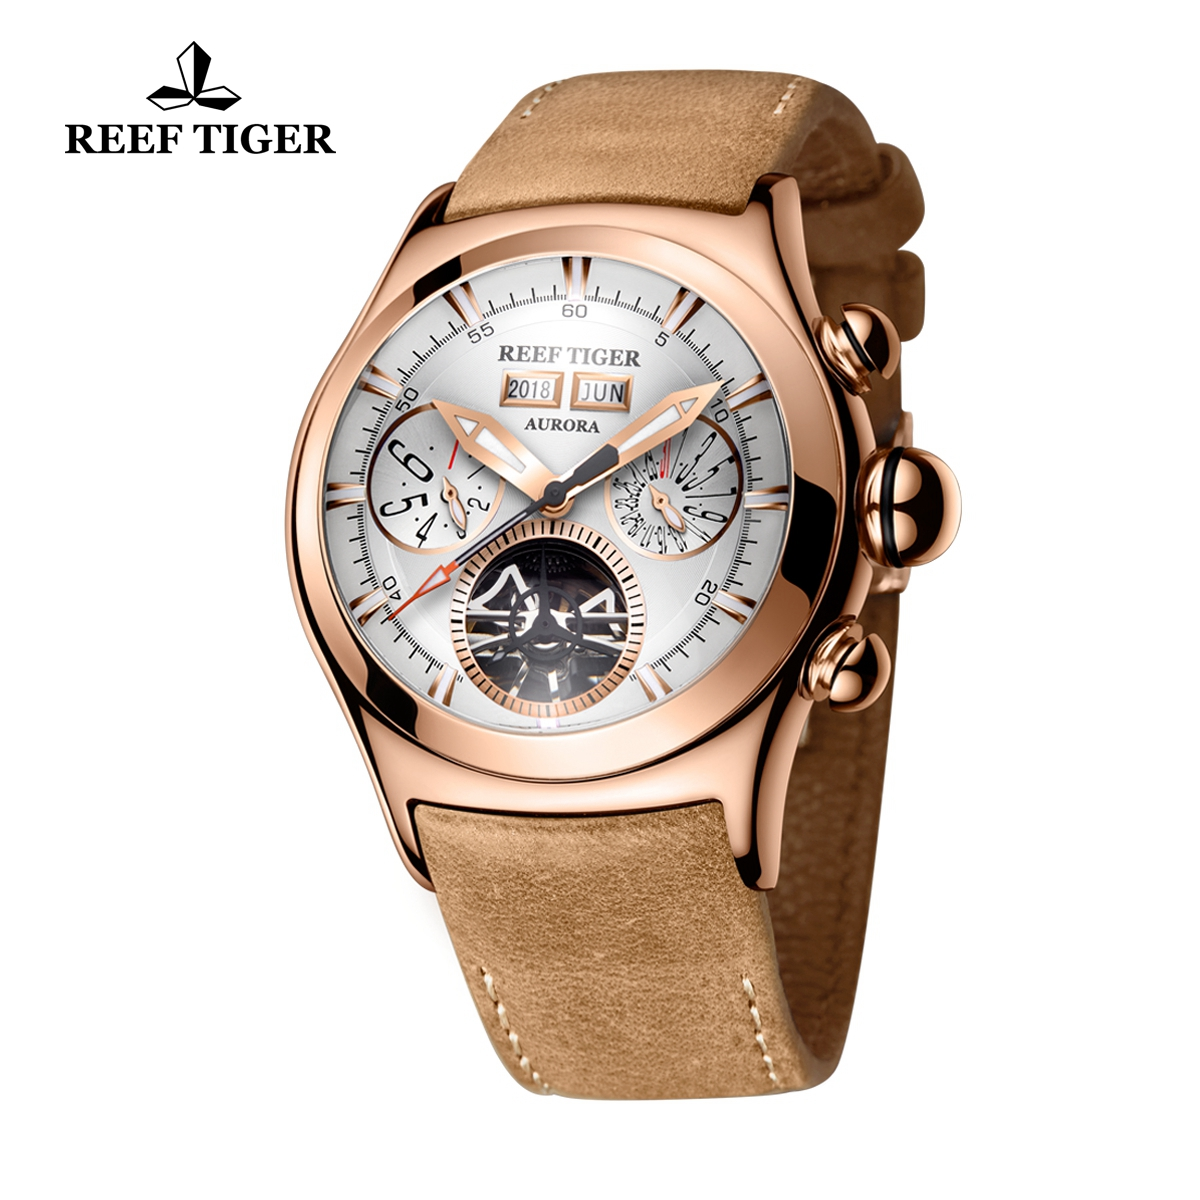 Reef Tiger Air Bubble II Casual Sport Watches Rose Gold Case Leather Strap Automatic Watch RGA7503-PWS